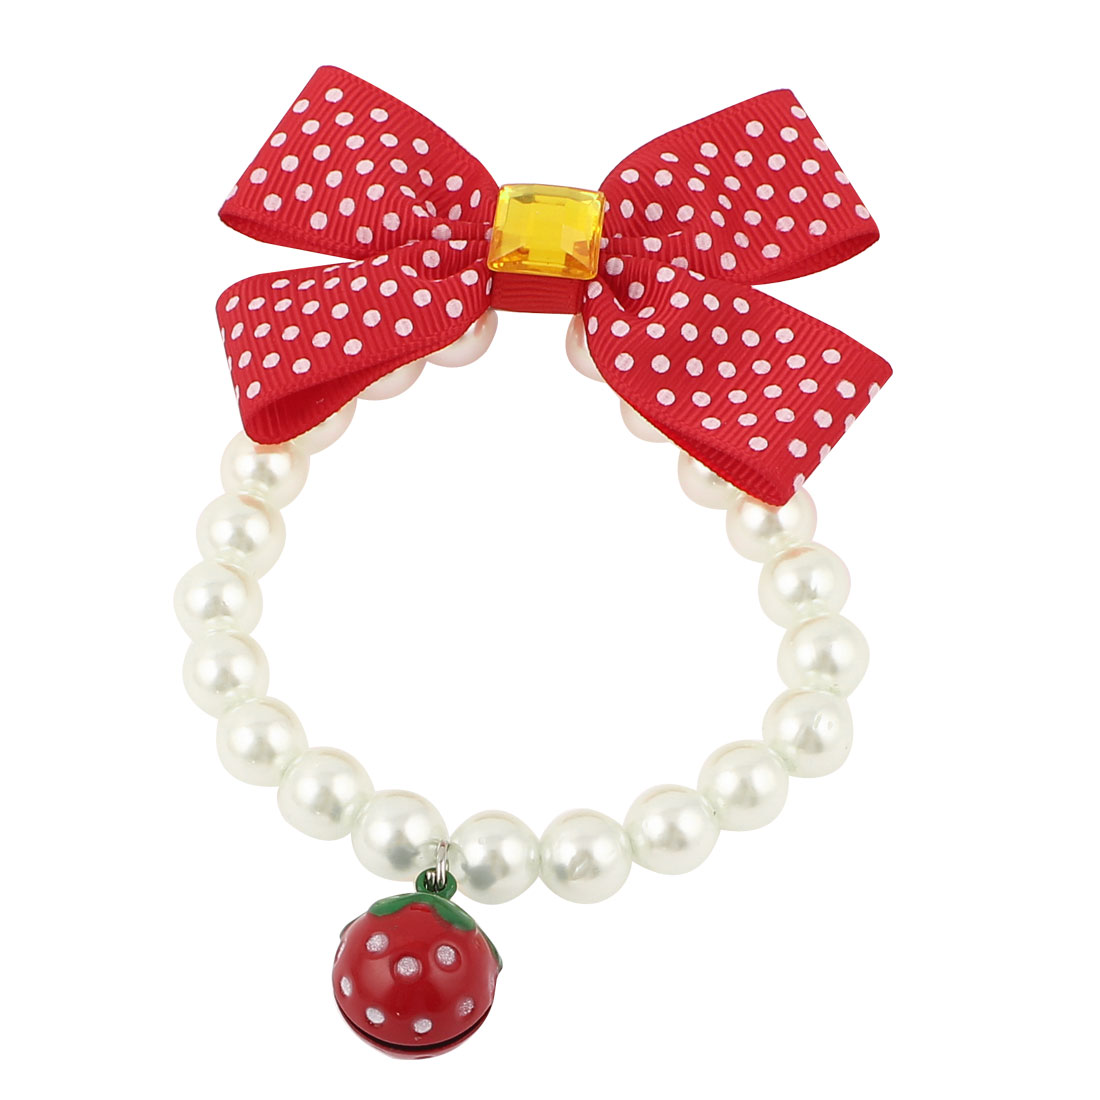 Metal Bell Pendant Bowtie Accent Pet Dog Plastic Beads Imitation Pearls Collar Necklace White Red XS